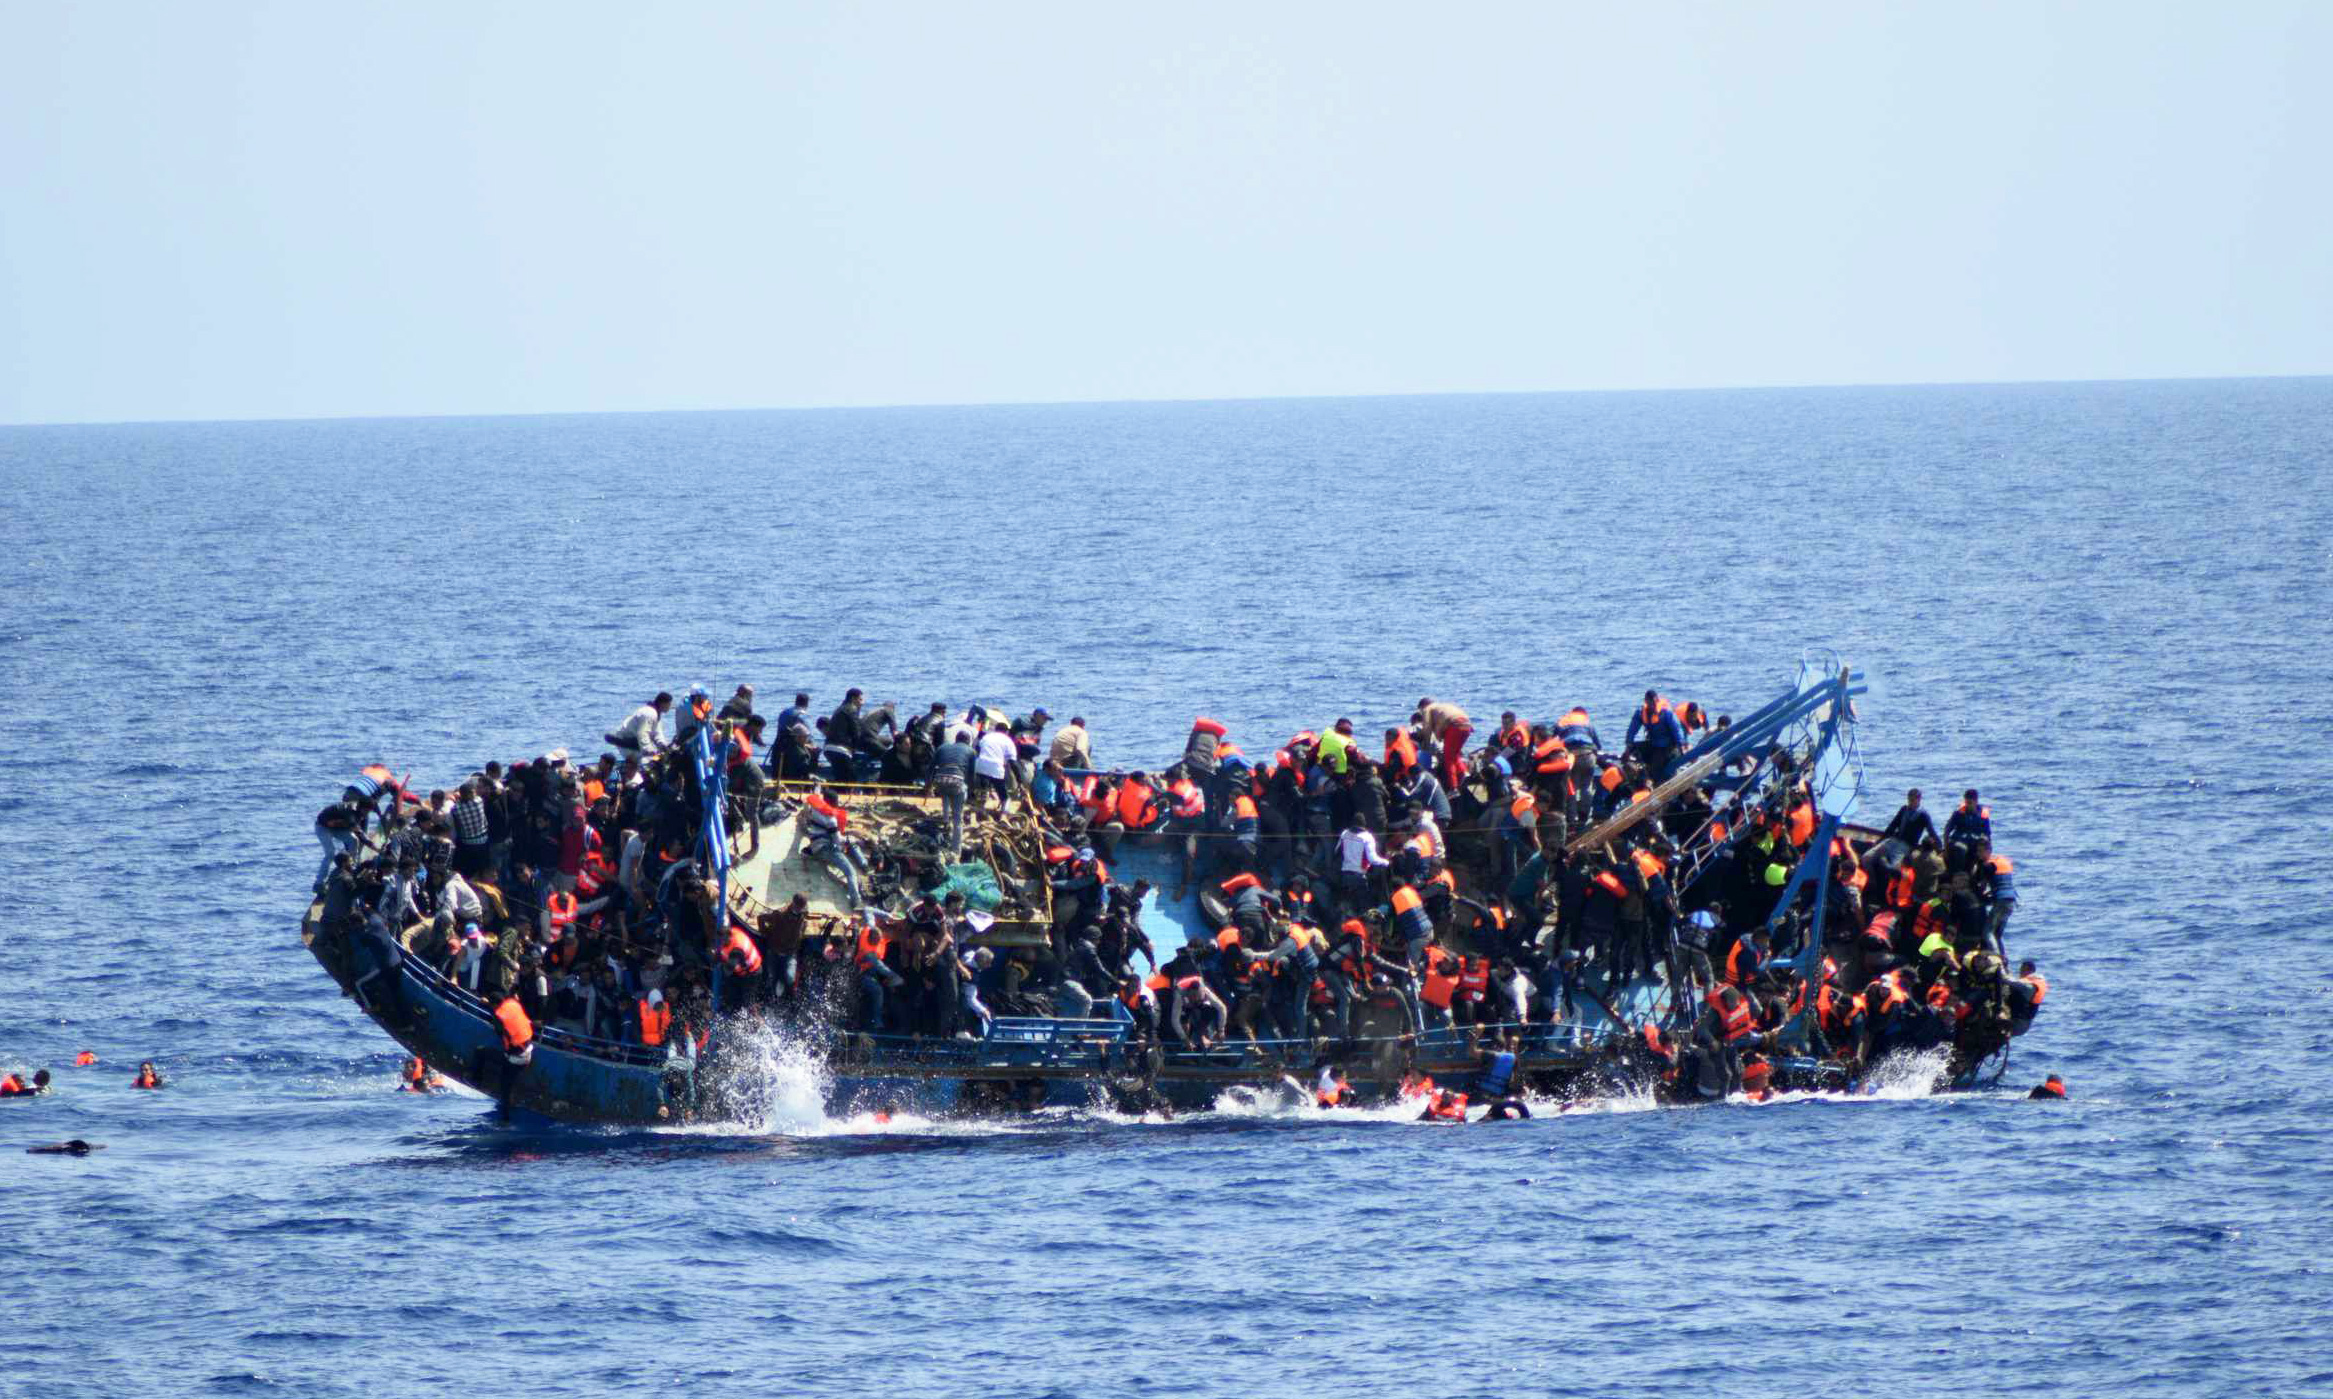 11 Pakistanis among 90 migrants feared dead in boat capsize off Libya